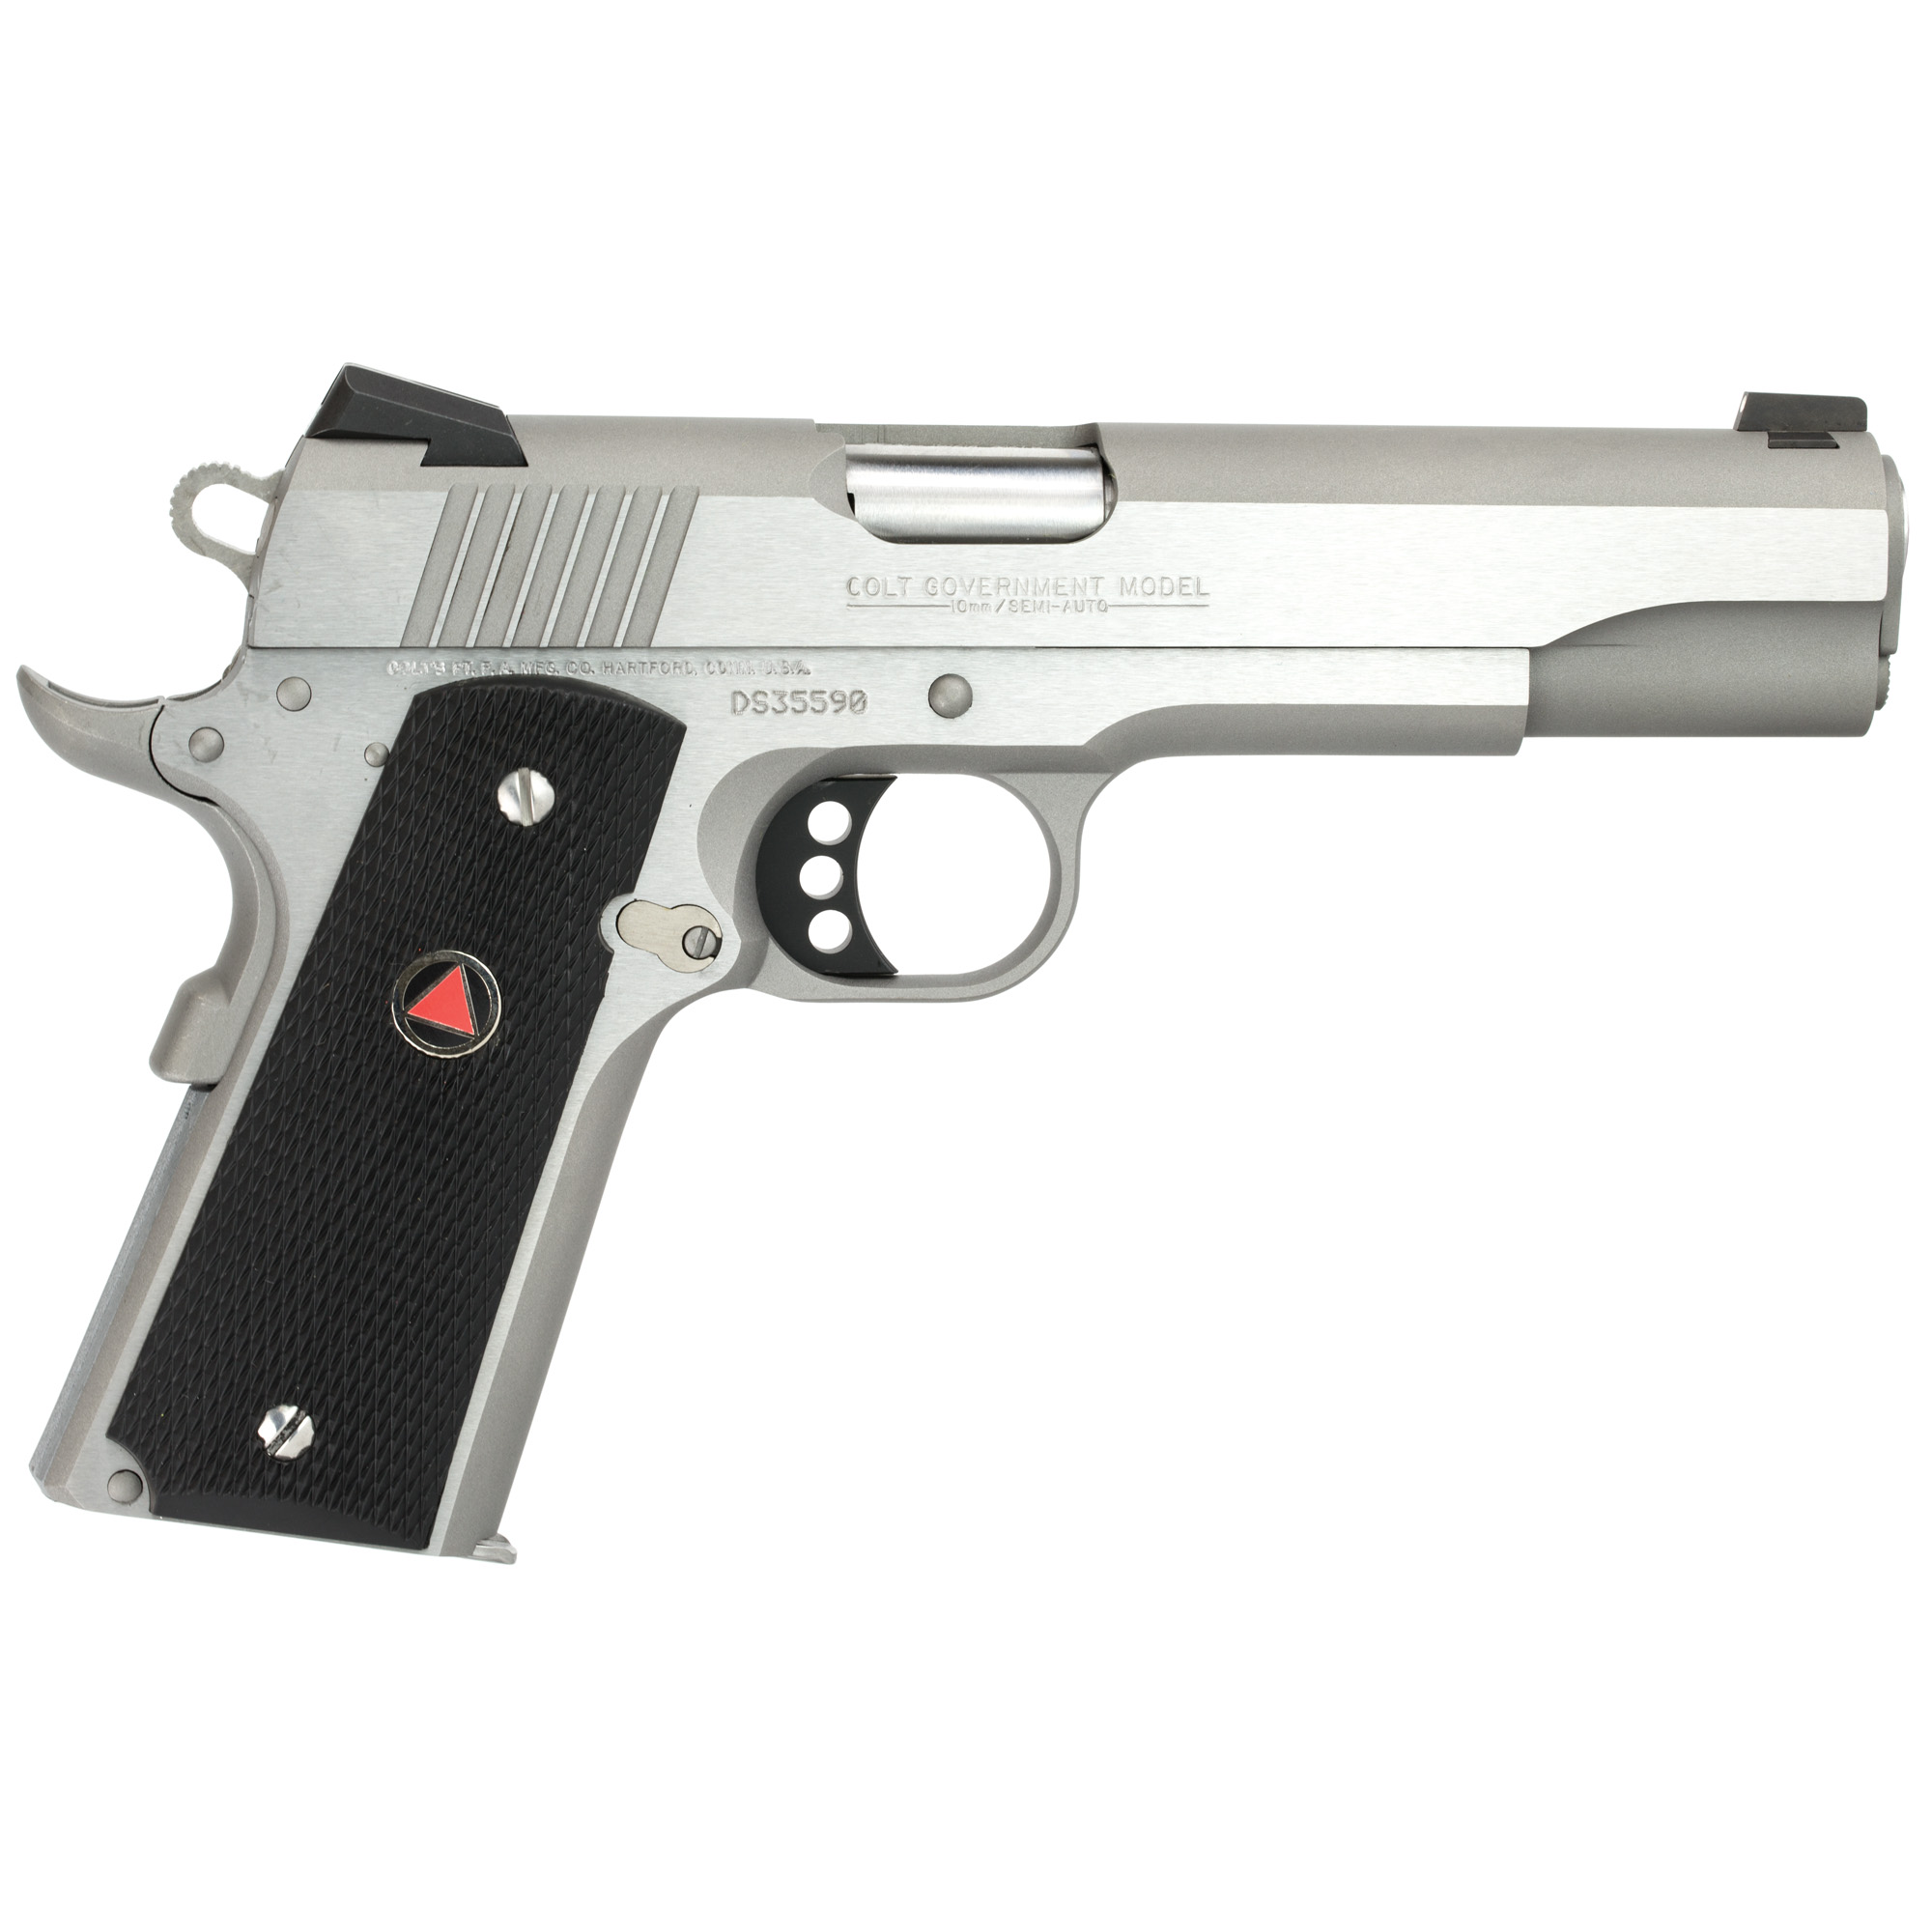 """The time-tested Colt Government Model(R) is available in 10MM. It features an Upswept Beavertail Grip Safety"""" Extended Thumb Safety"""" and Genuine Novak White Dot Sights. The 10MM offers the power to hunt medium sized game with near .41 Magnum ballistics in a legendary 1911 style pistol. Composite Grips with Delta Medallions make this powerful pistol comfortable to shoot."""